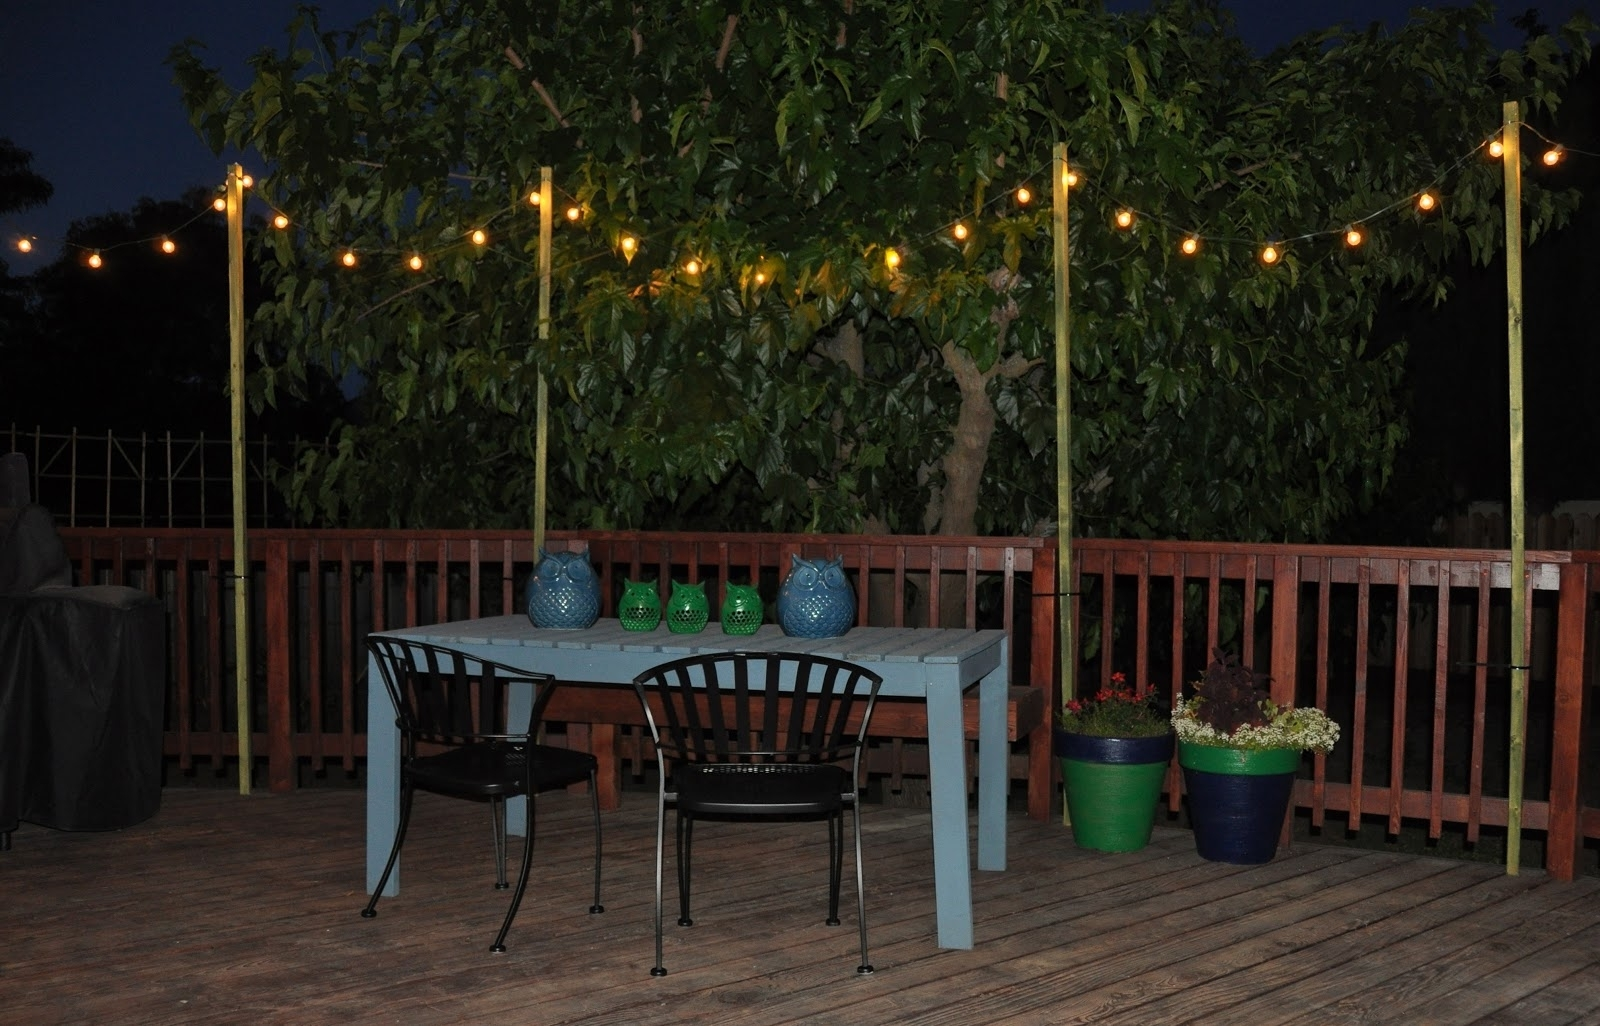 Glamorous Backyard String Lights Decorative Indoor Porch Led Hanging With Recent Hanging Outdoor Lights On Deck (Gallery 9 of 20)